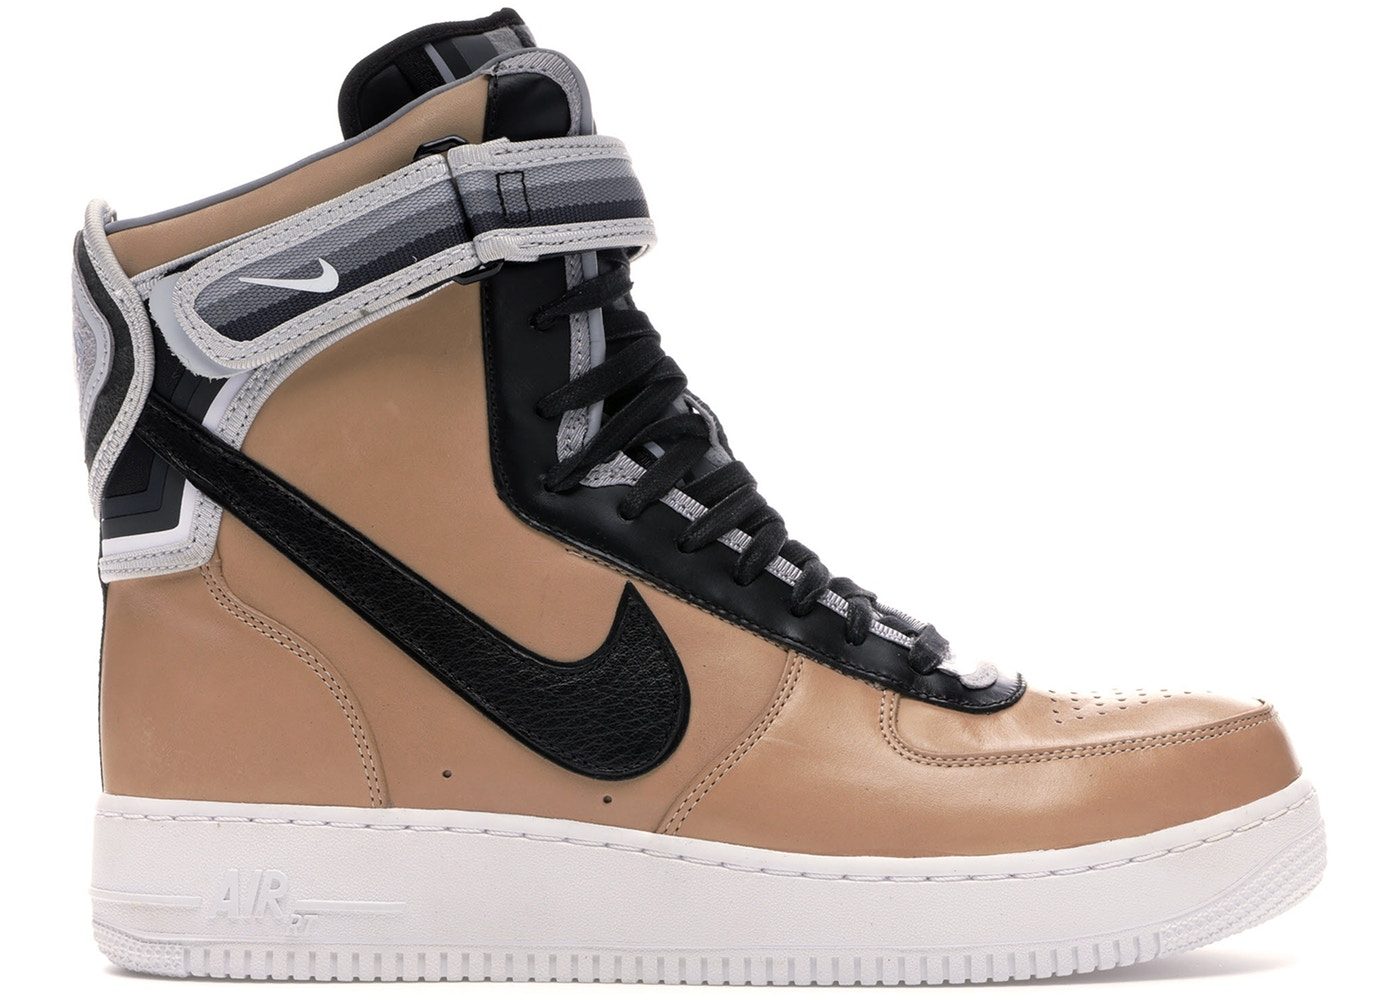 ナイキ NIKE エア ハイ スニーカー 【 AIR FORCE 1 HIGH TISCI TAN VACHETTA BLACK 】 メンズ